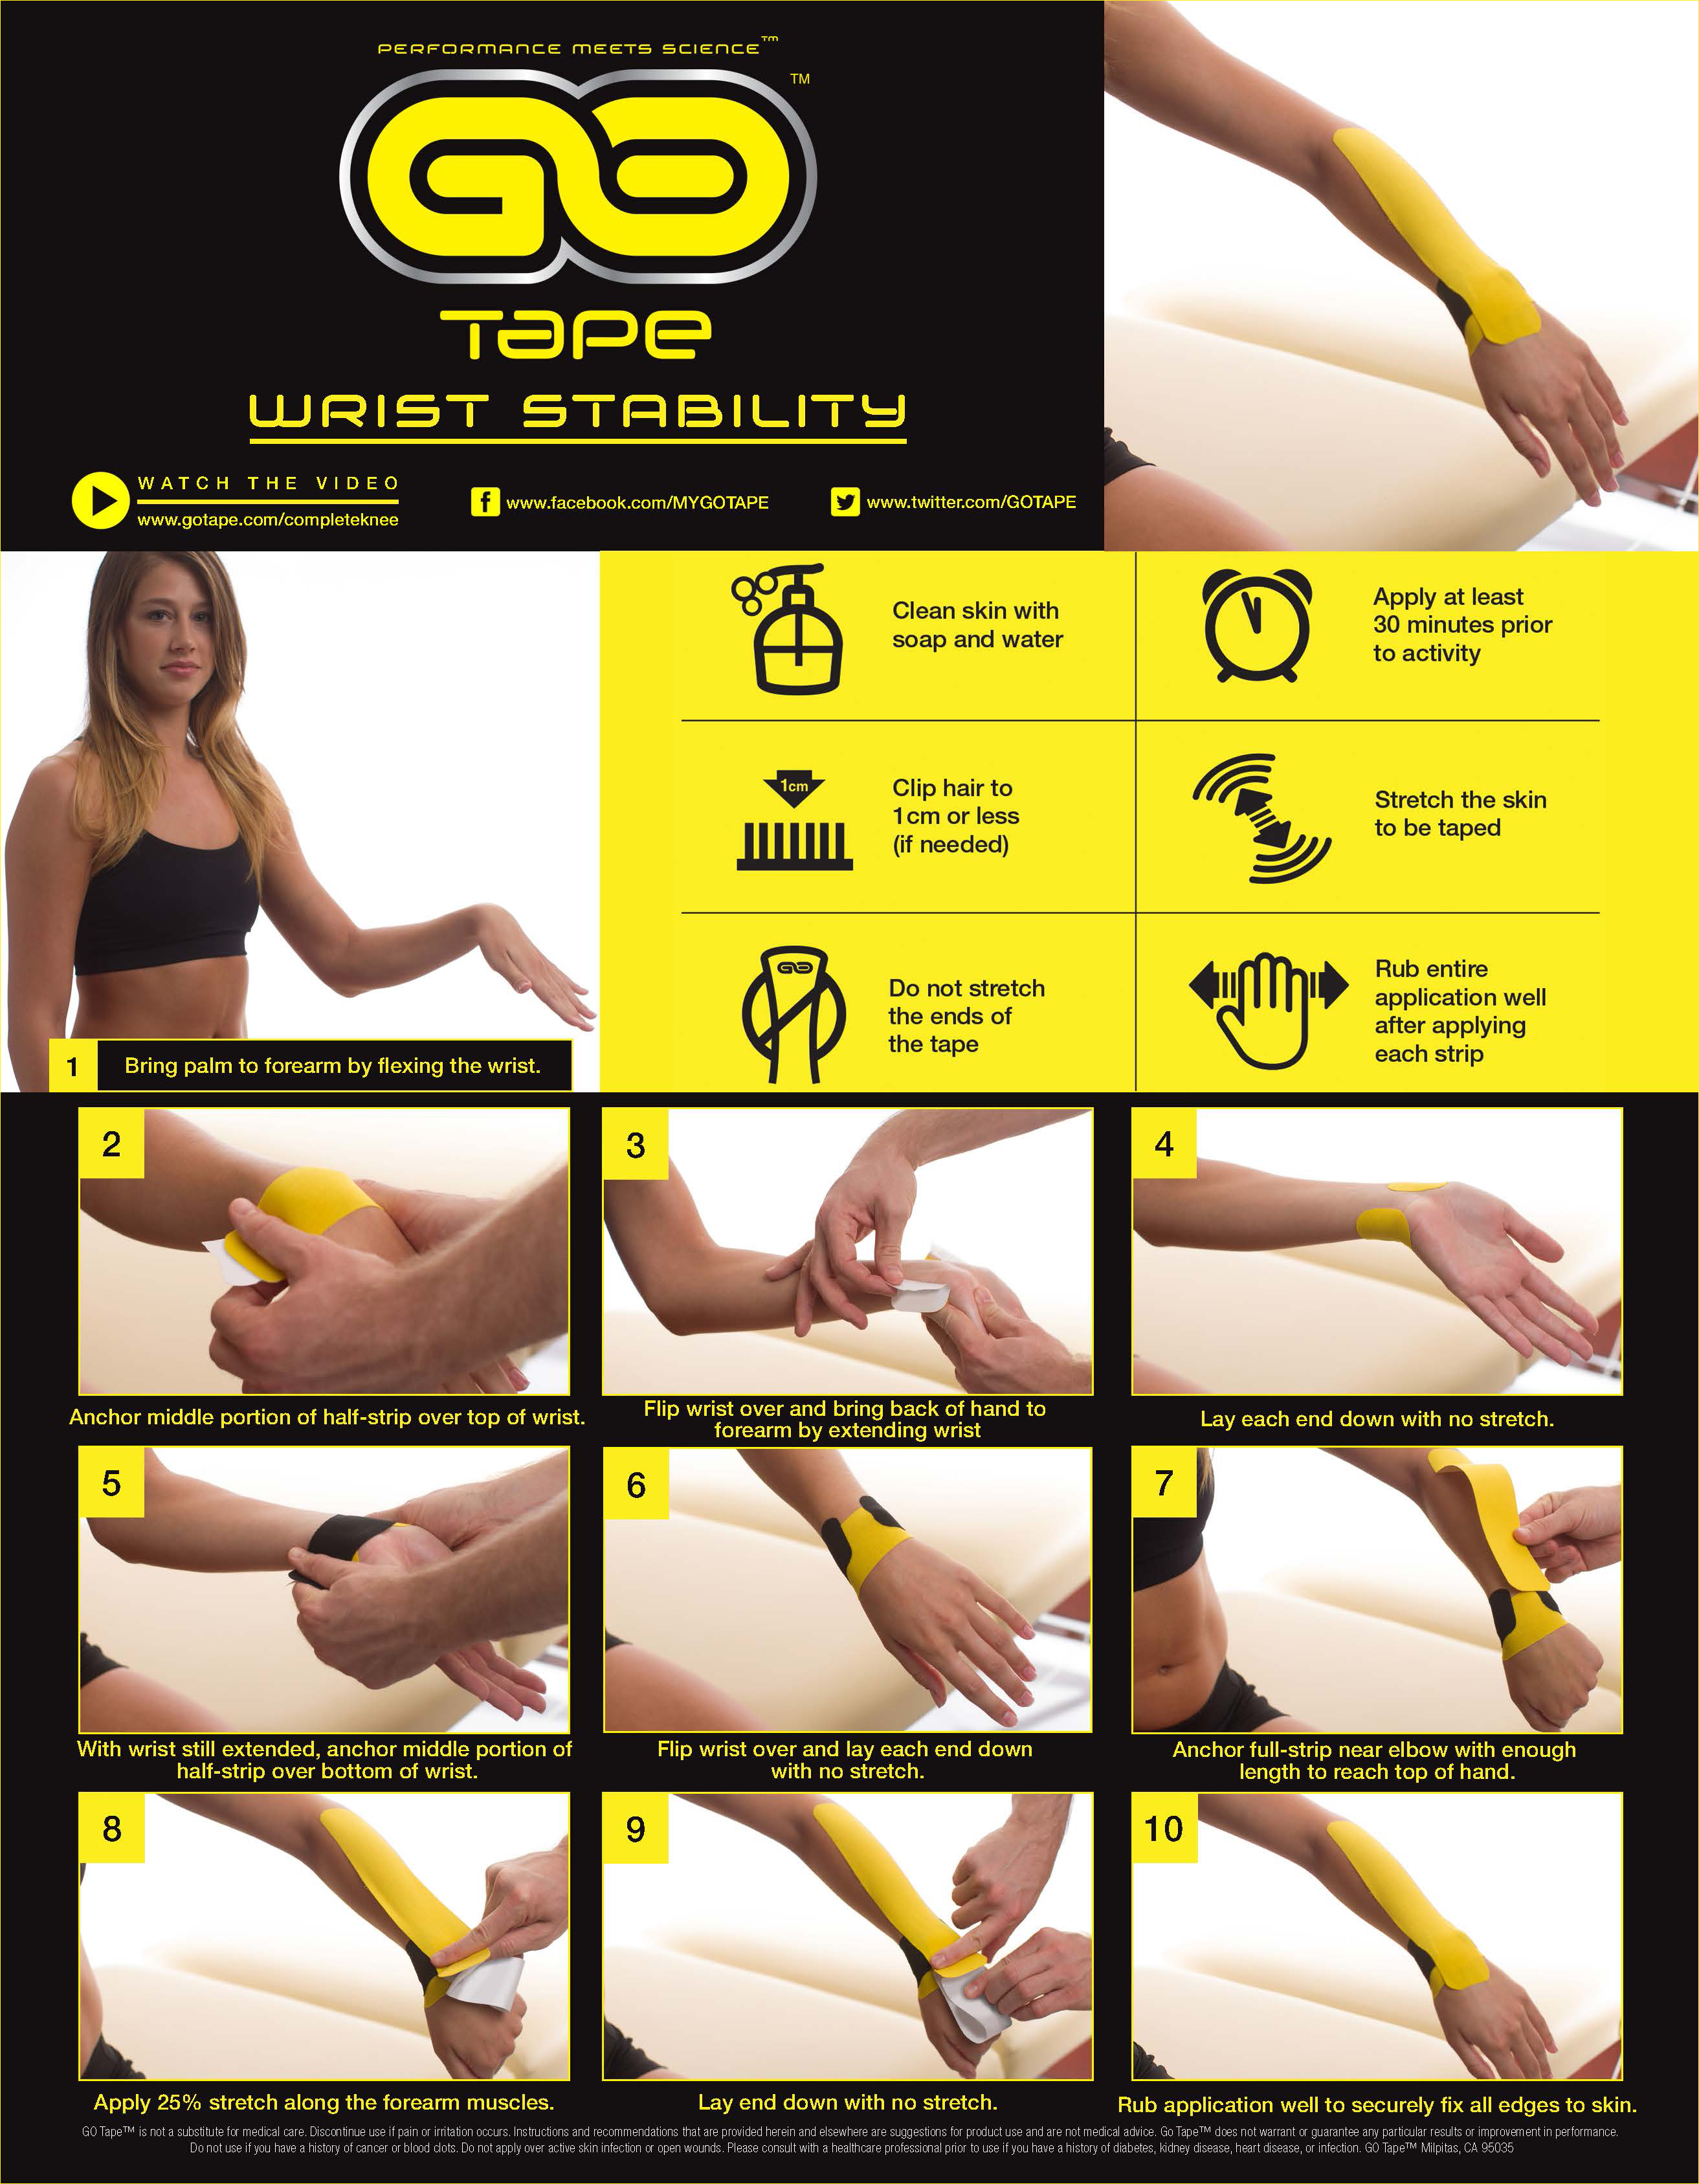 GO_Tape_Application_Instructions_Wrist_Stability